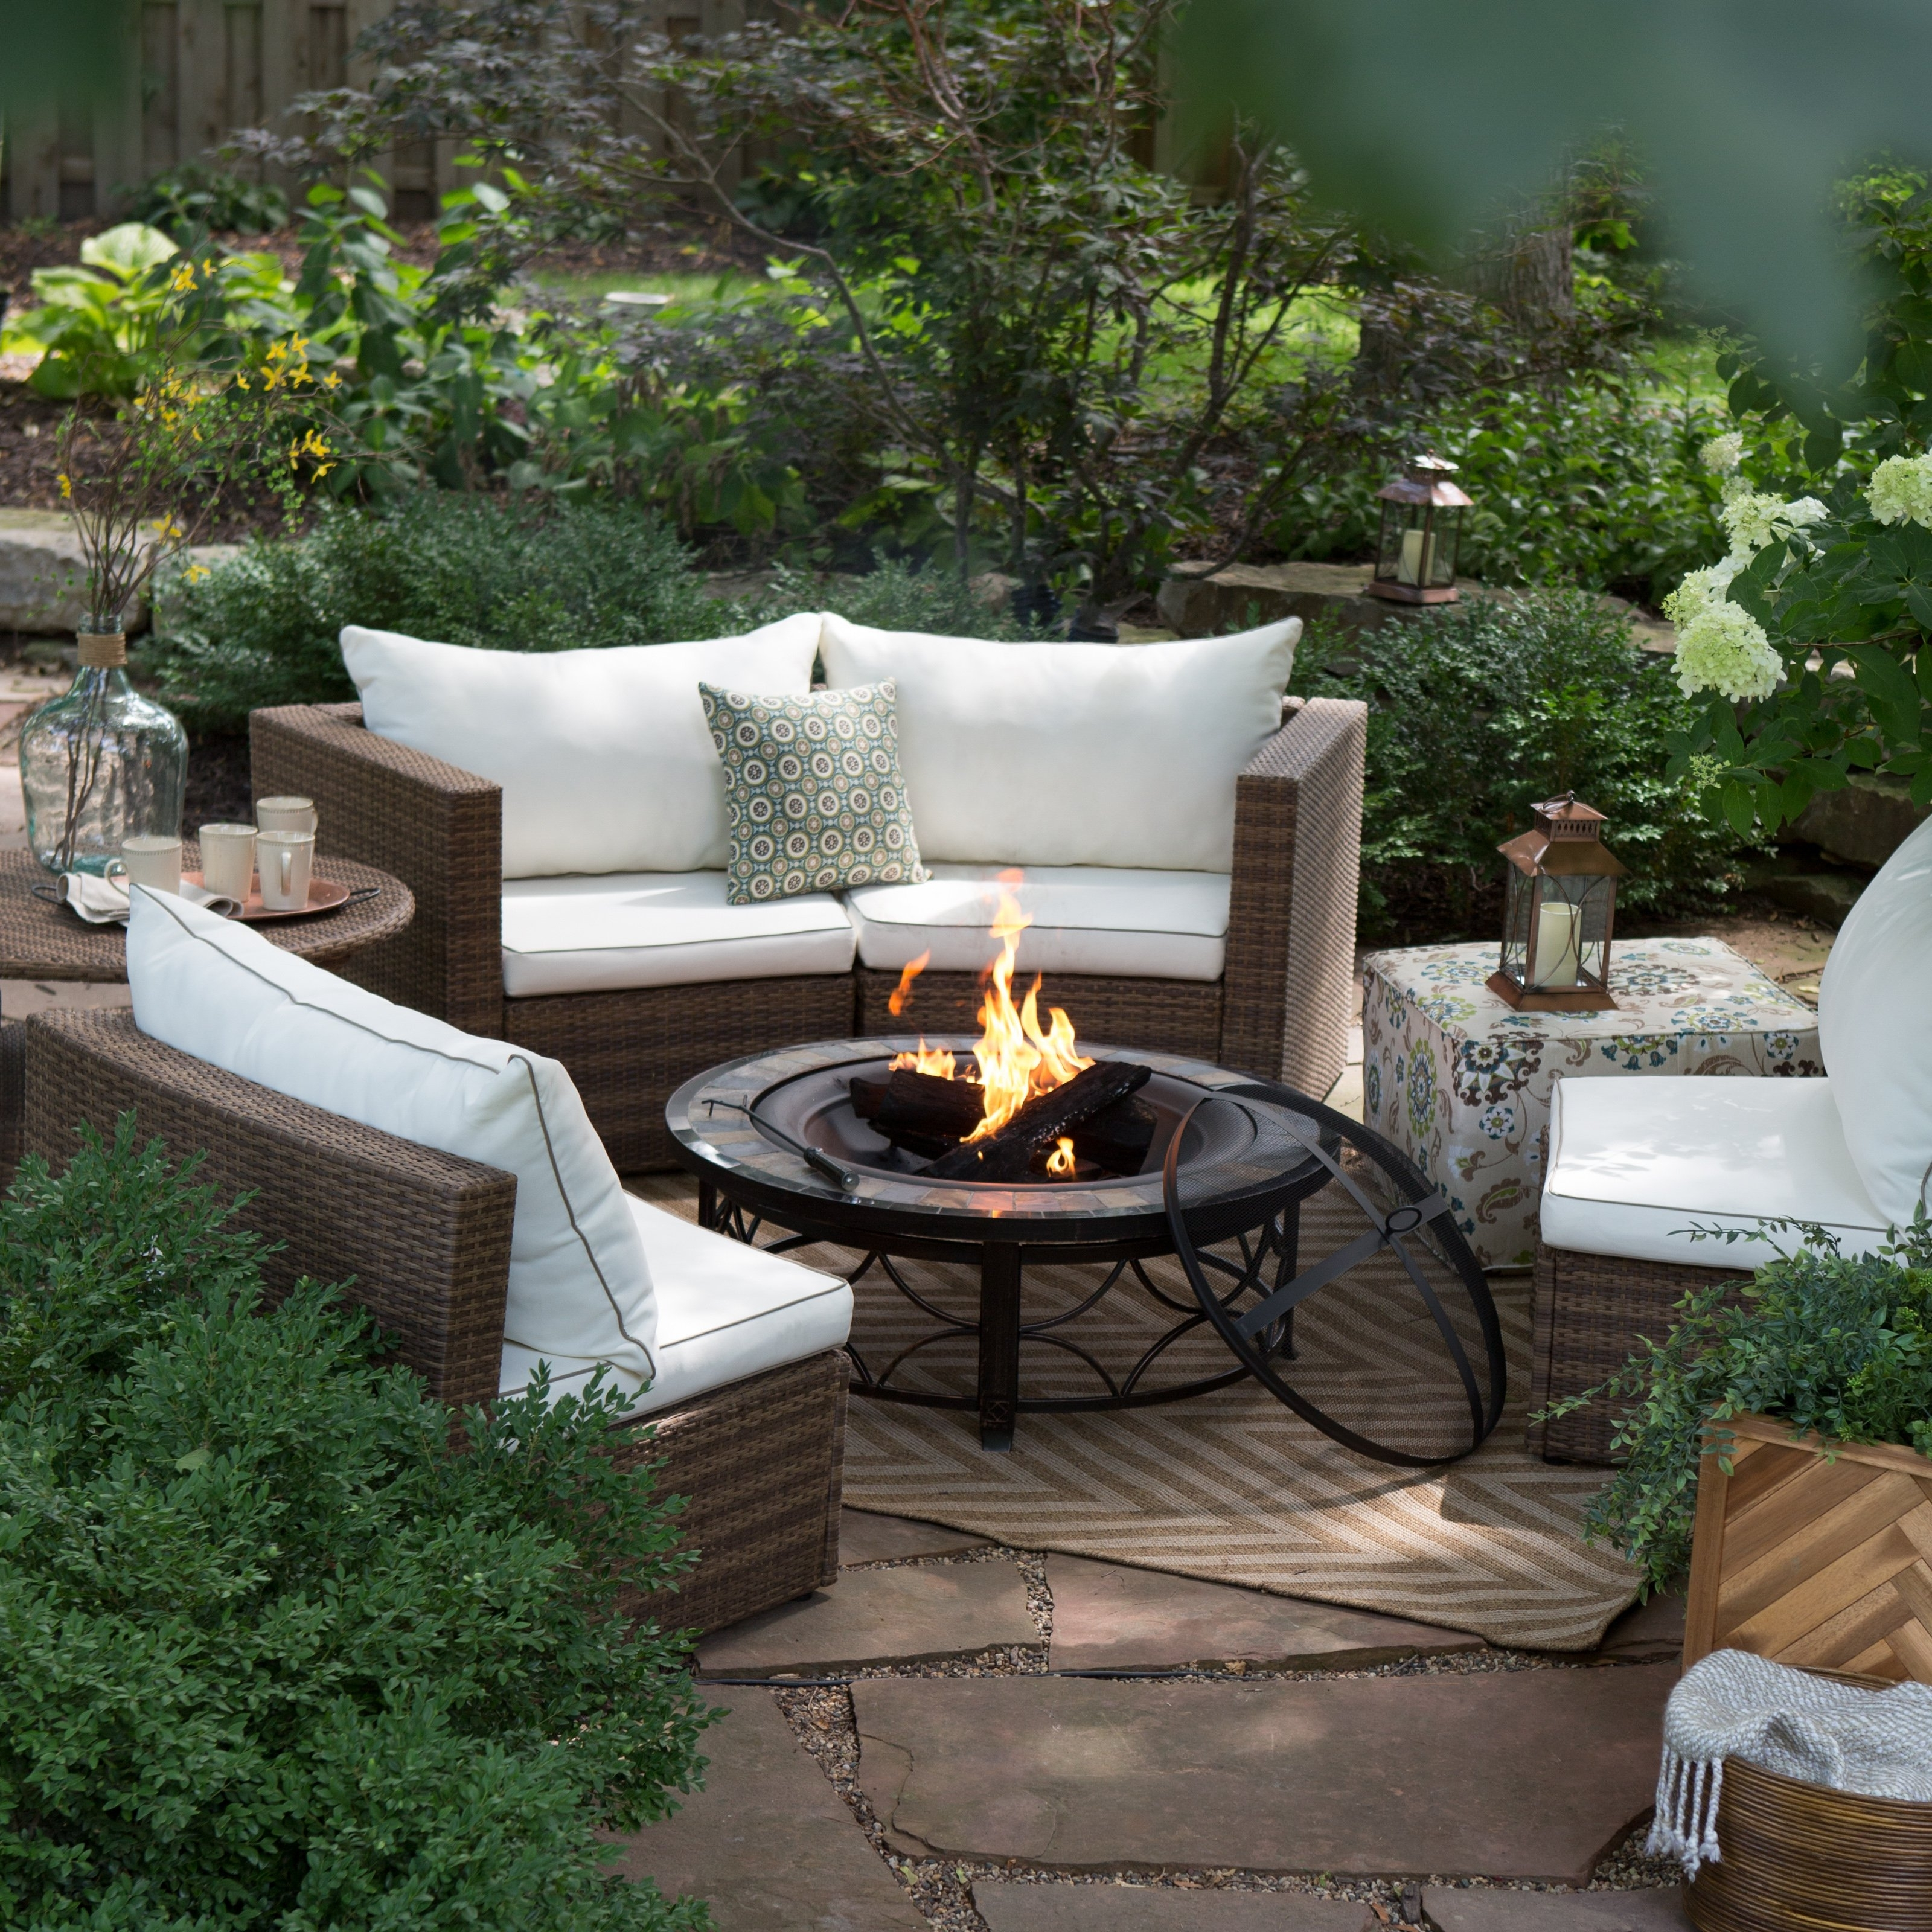 Patio Conversation Sets With Propane Fire Pit Within Trendy Decoration : Fire Pit Chairs Fire Pit Set Outdoor Propane Fire Pit (View 10 of 15)